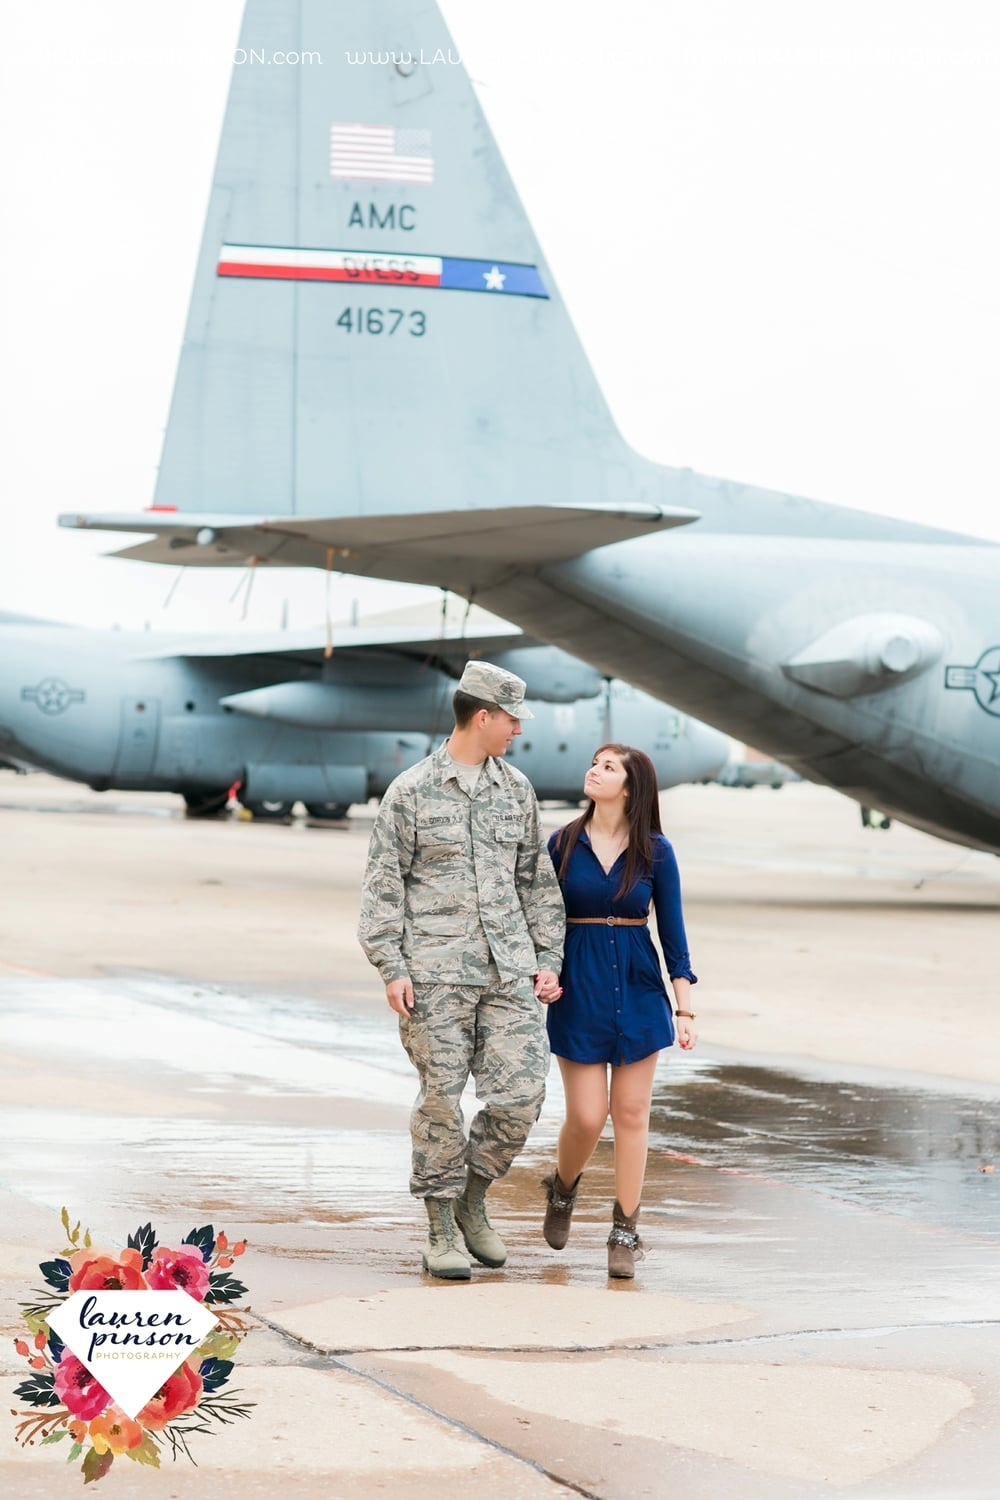 sheppard-afb-wichita-falls-engagement-session-airmen-in-uniform-abu-airplanes-bride-engagement-ring-texas-air-force-base_2003.jpg